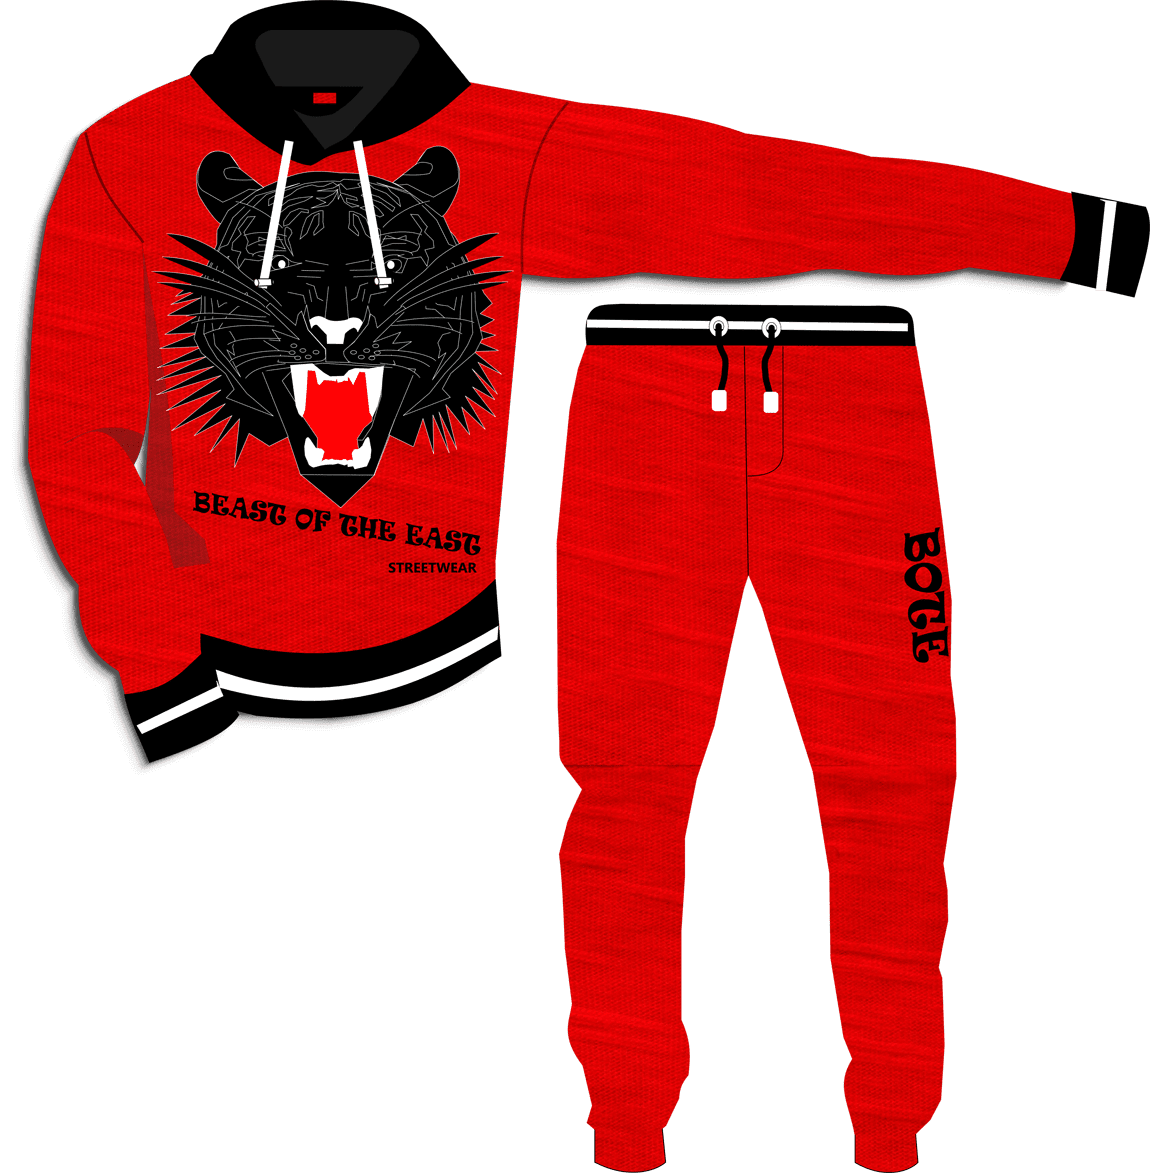 Fashion Sketch Gallery - fashion sketching app - clothing sketches - digital fashion pro - 1150 - red streetwear sweat shirt